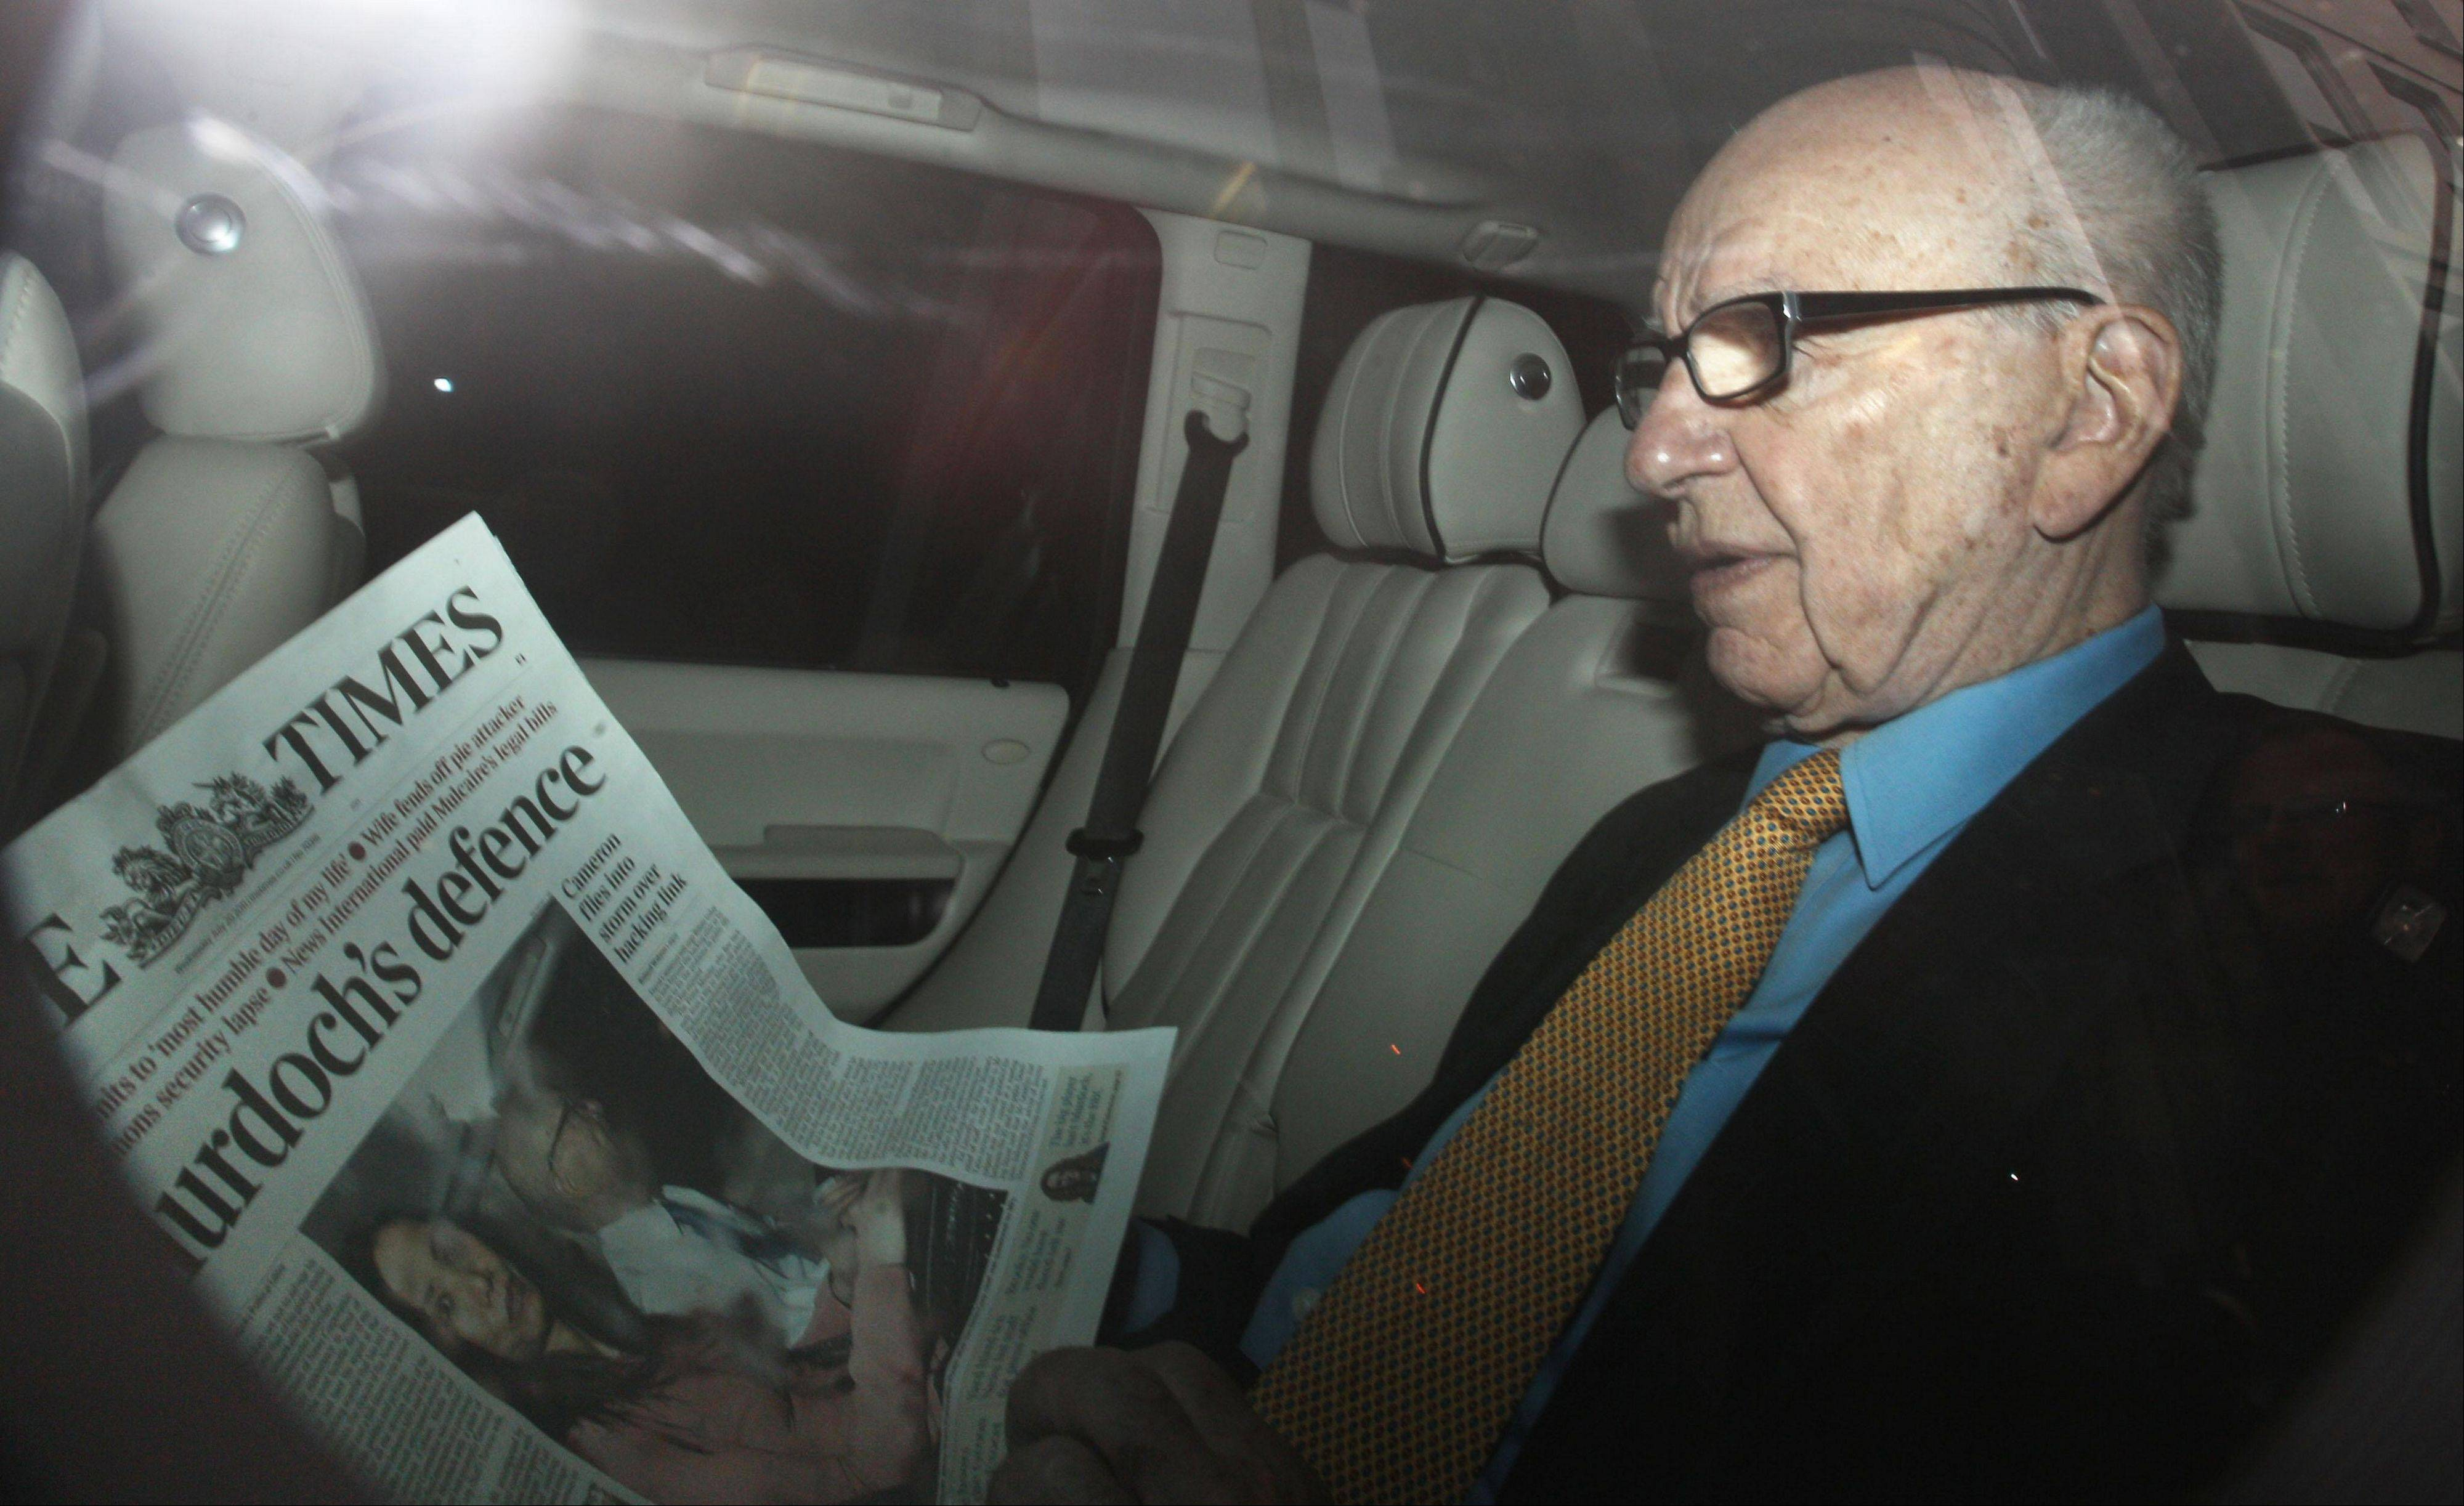 Rupert Murdoch's critics say he has focused too much attention on expanding his empire with little regard for Wall Street's chief measure of success: a rising stock price.